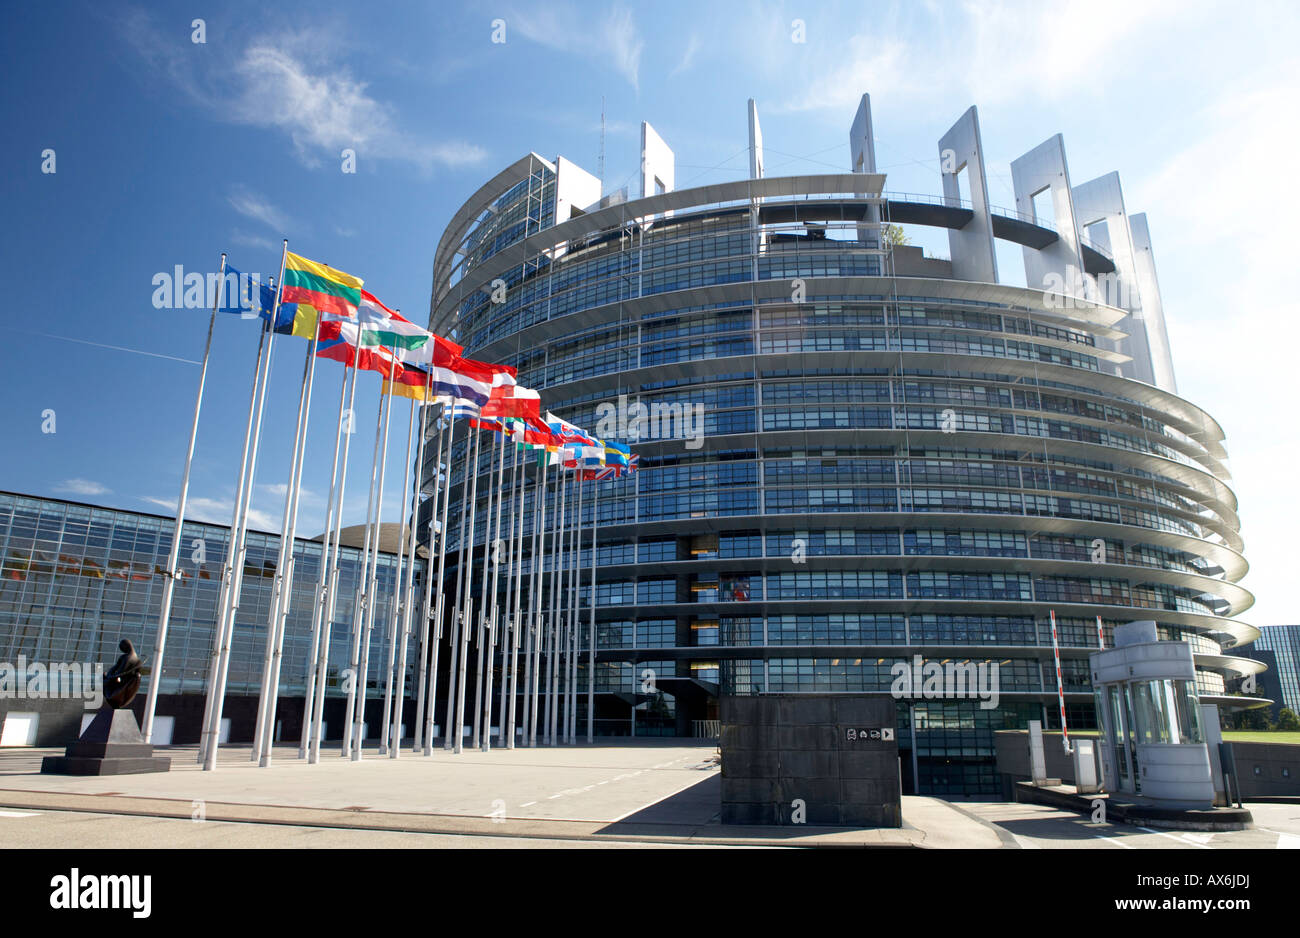 Flags in front of government building, European Parliament, Strasbourg, Alsace, France - Stock Image